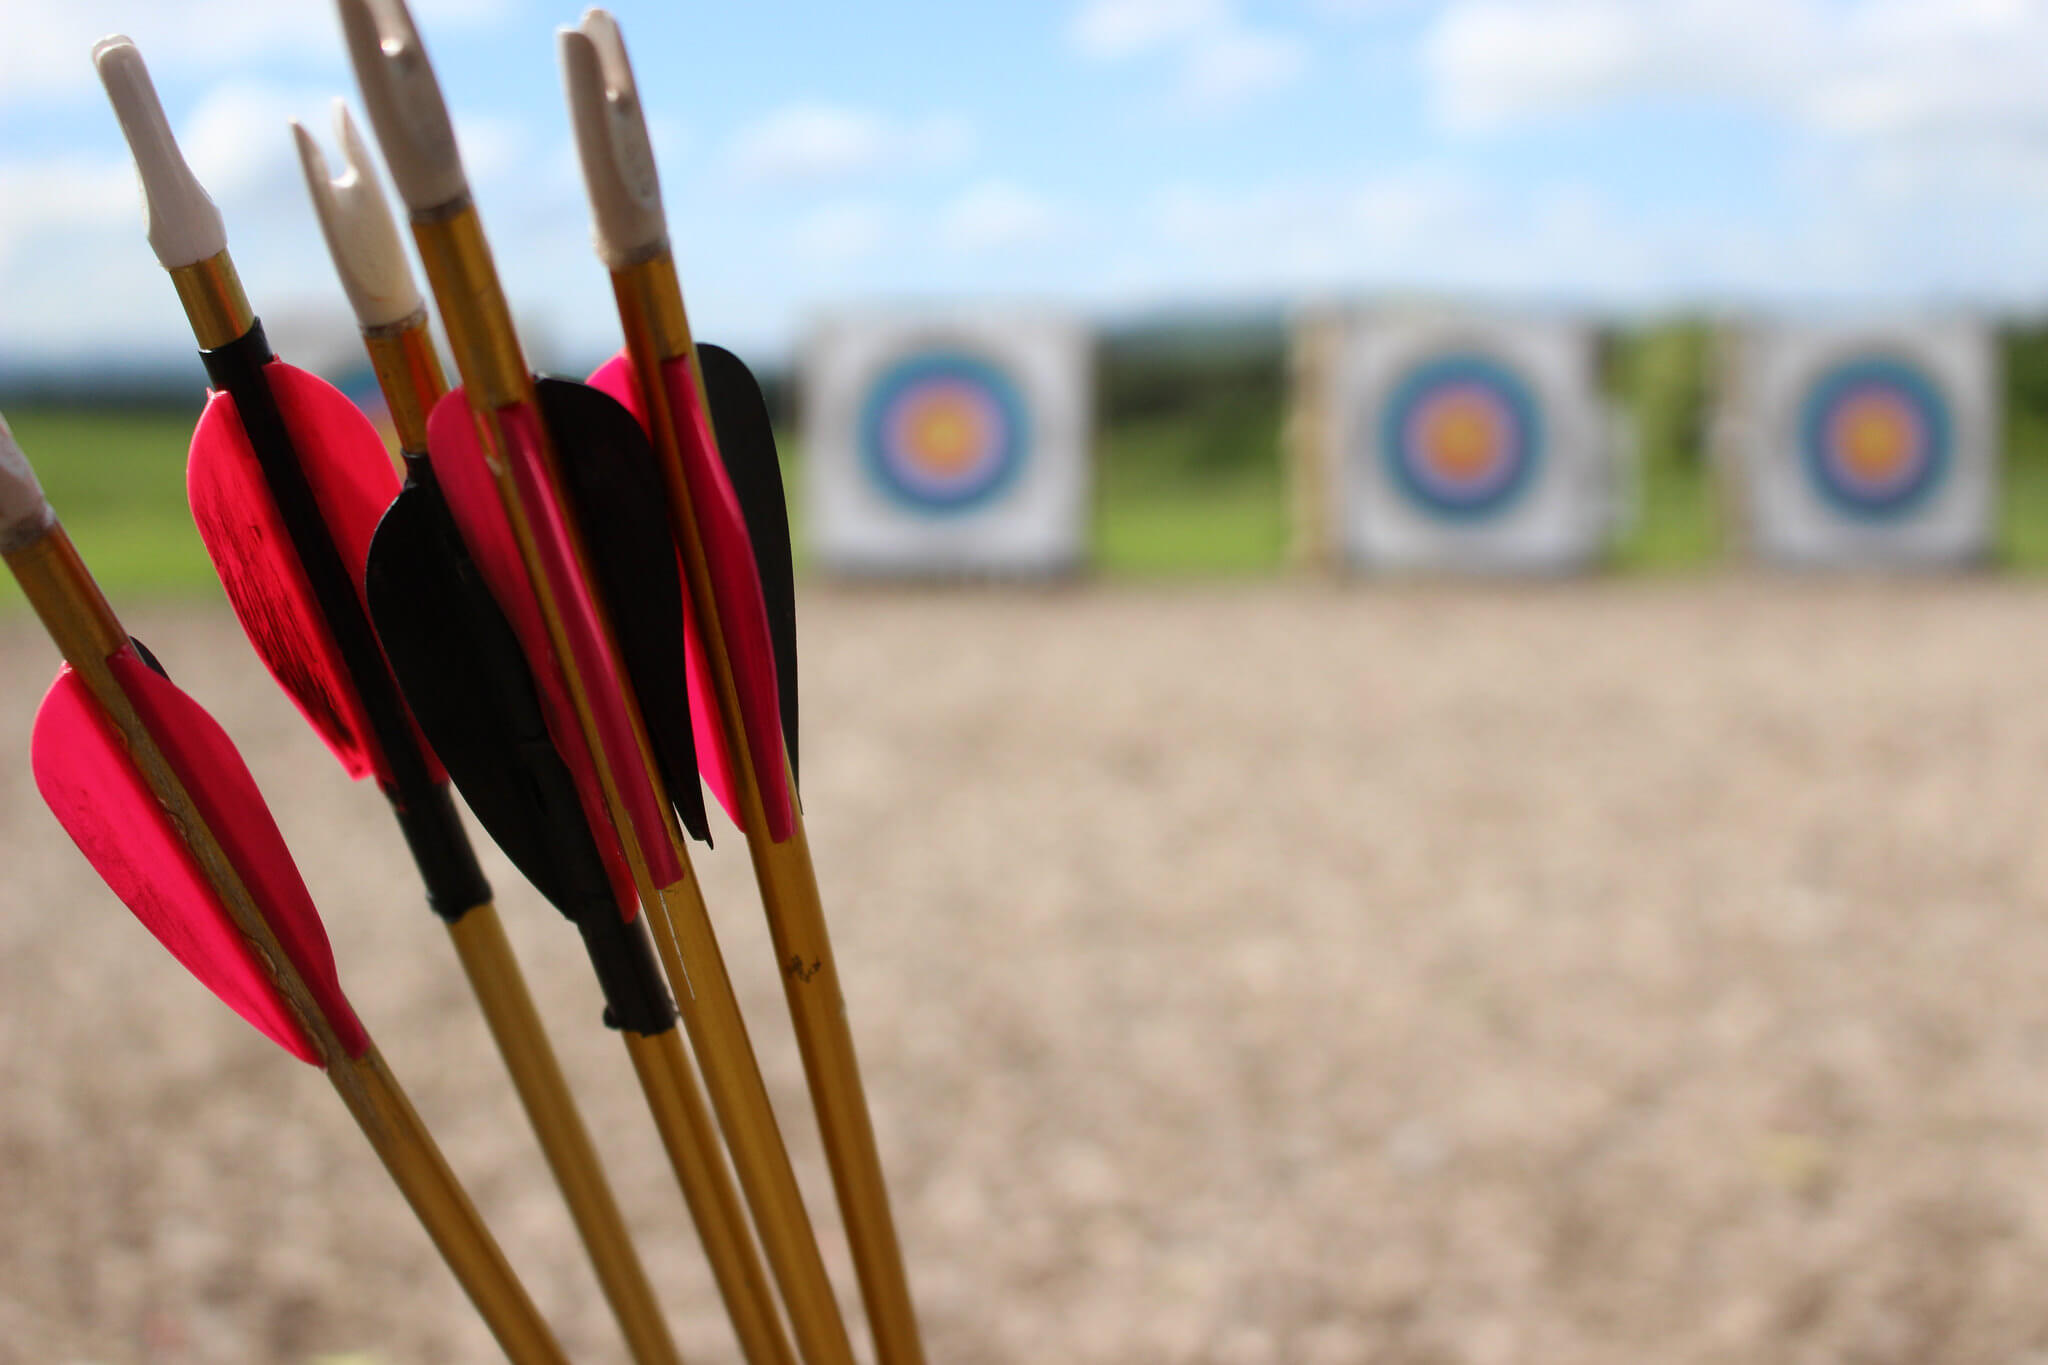 Arrows in front of targets